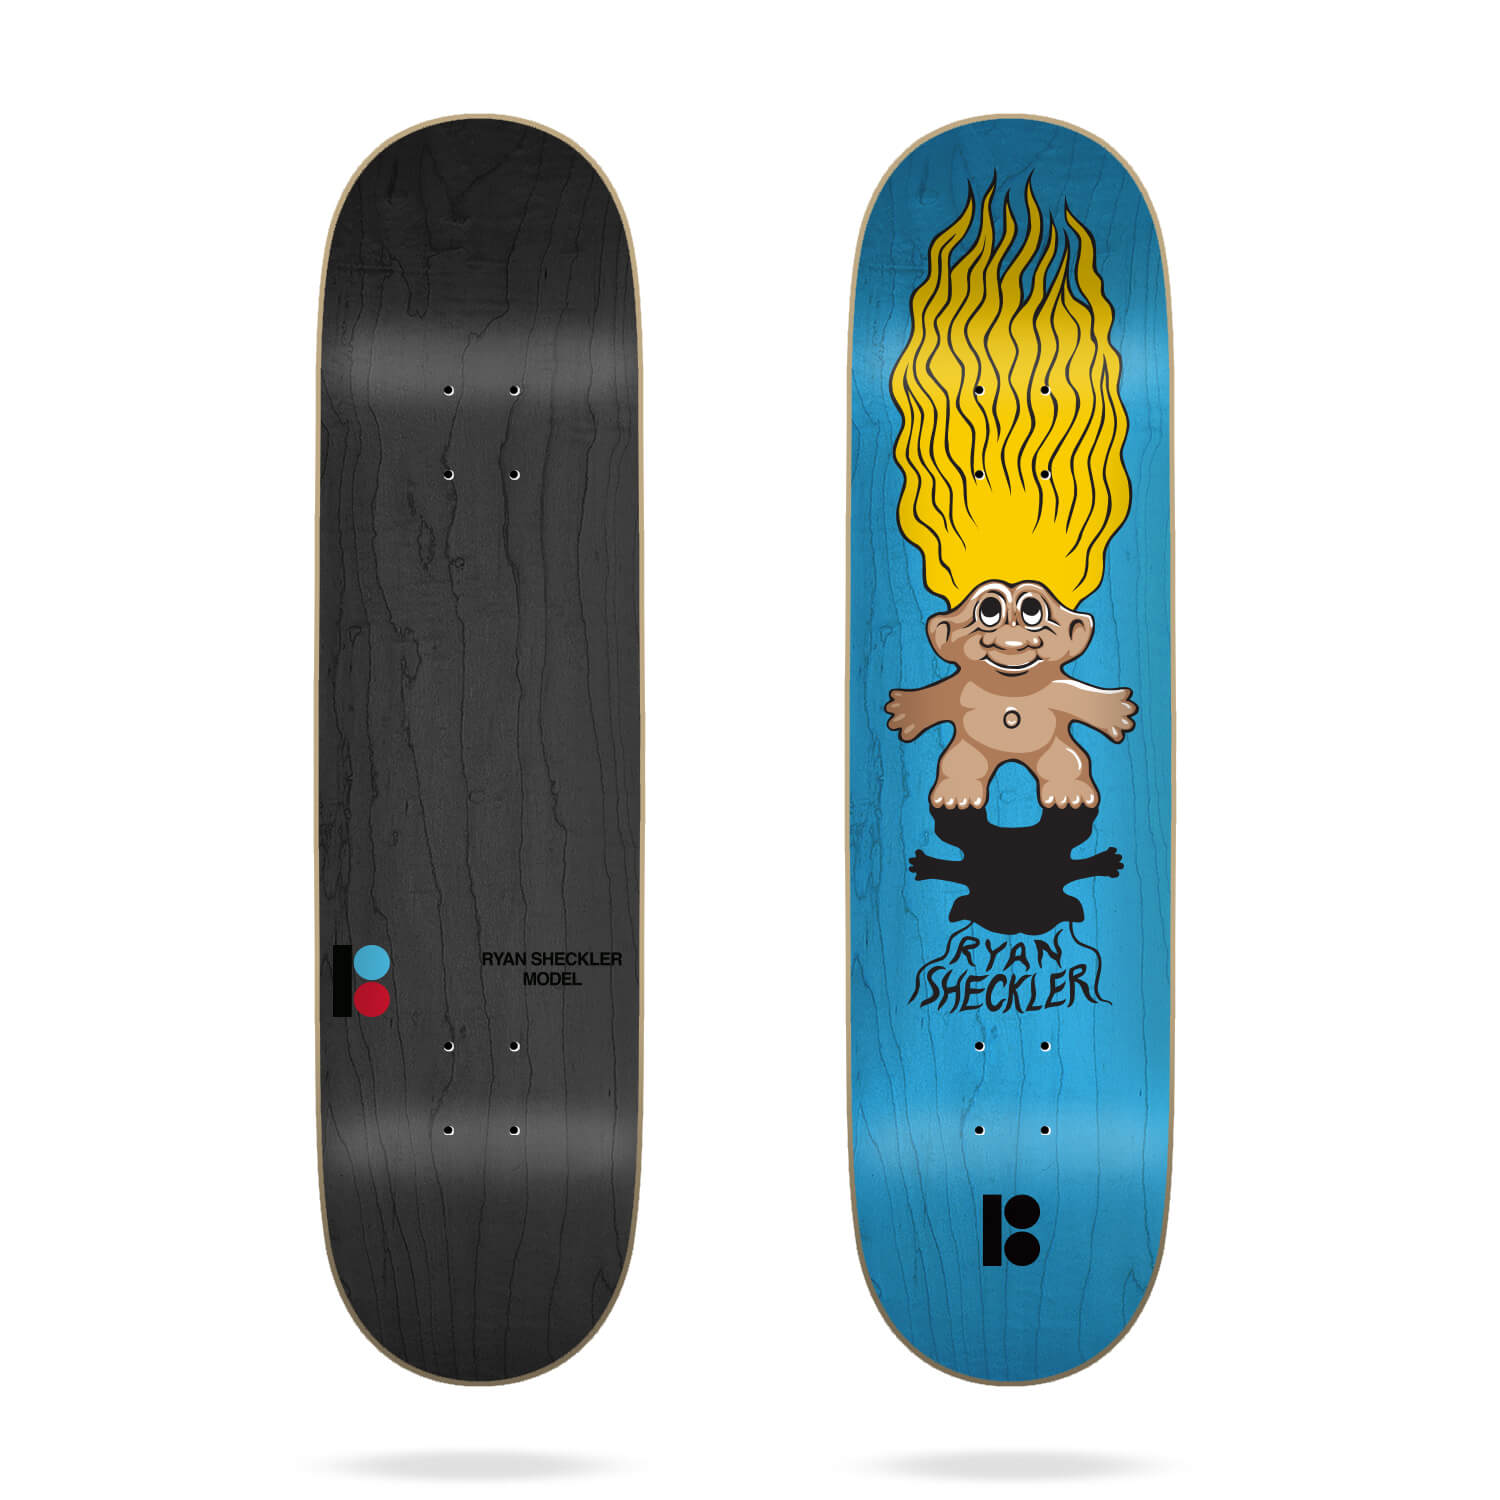 "Plan B Sheckler Trolls 8.0"" Deck"